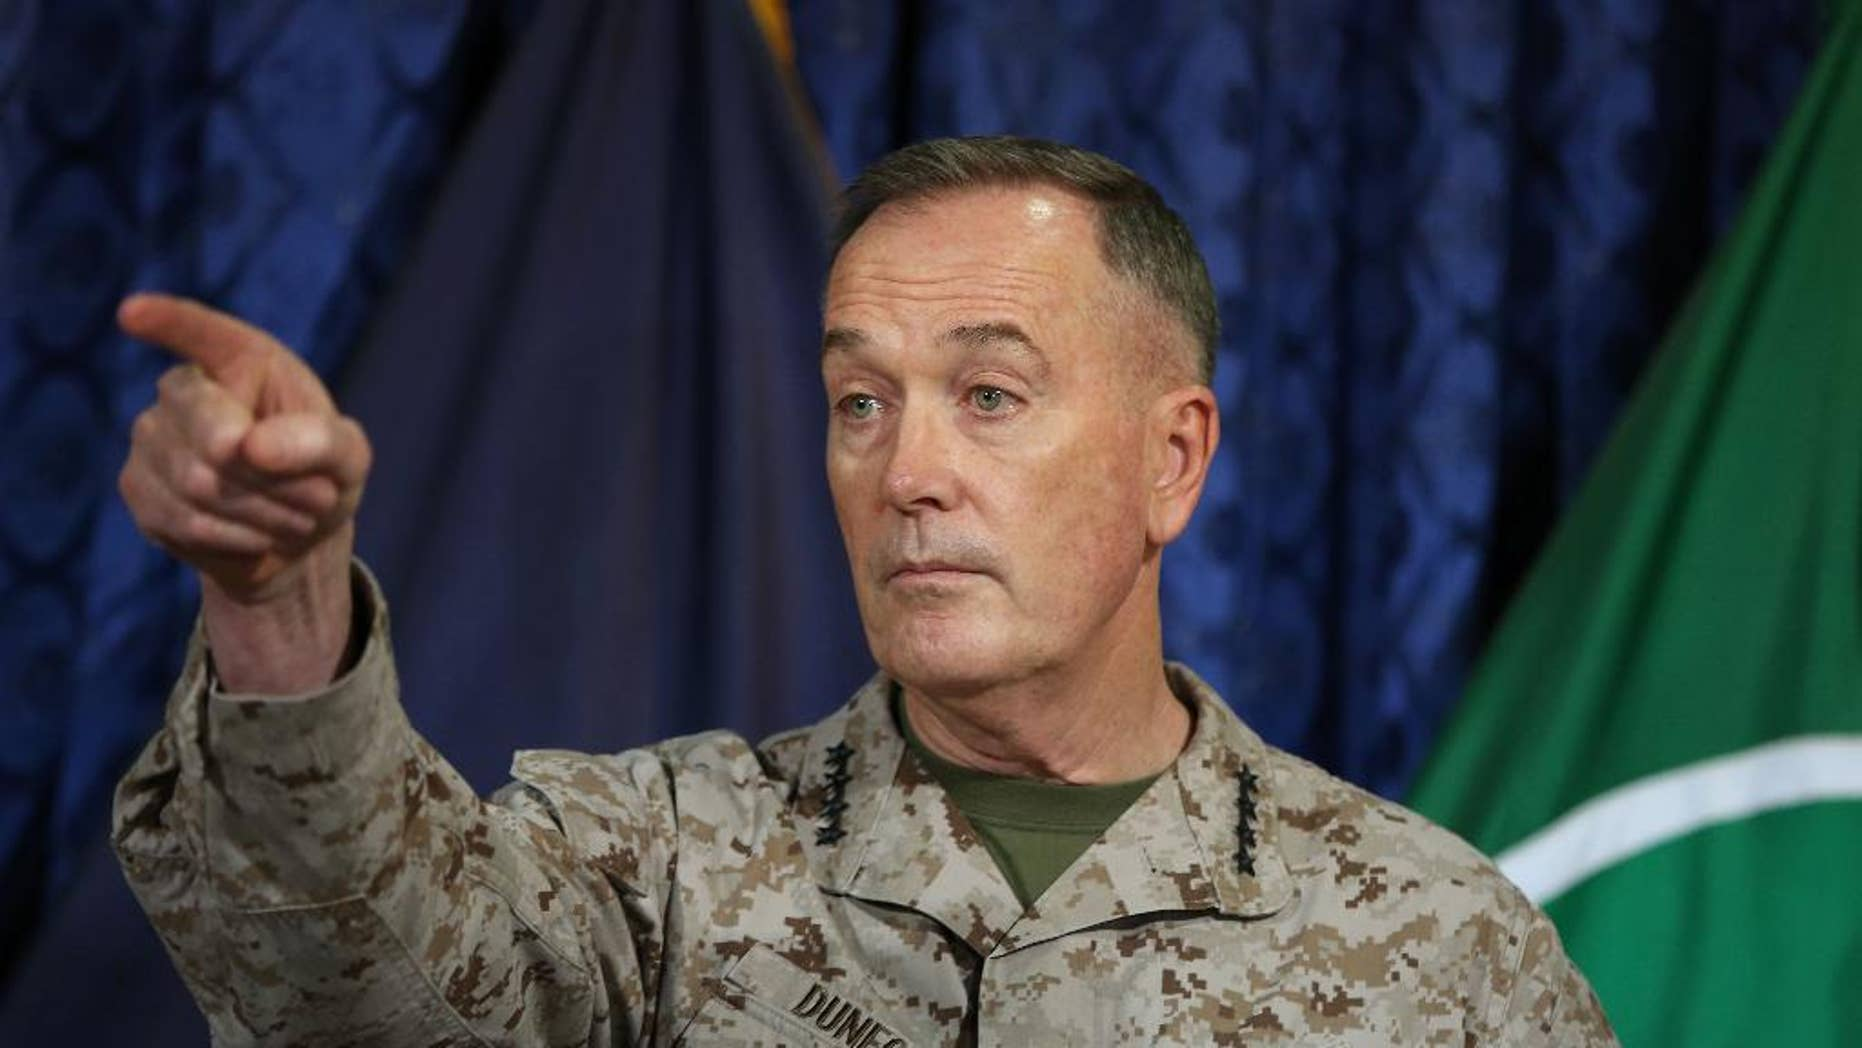 FILE - In this May 28, 2014, file photo, Gen. Joseph Dunford, points during a news conference at the ISAF Headquarters in Kabul, Afghanistan. The top U.S. military commander in Afghanistan said the U.S. has increased its surveillance over the Afghan-Pakistani border, as Pakistan pounds a militant stronghold with airstrikes. (AP Photo/Massoud Hossaini, File)